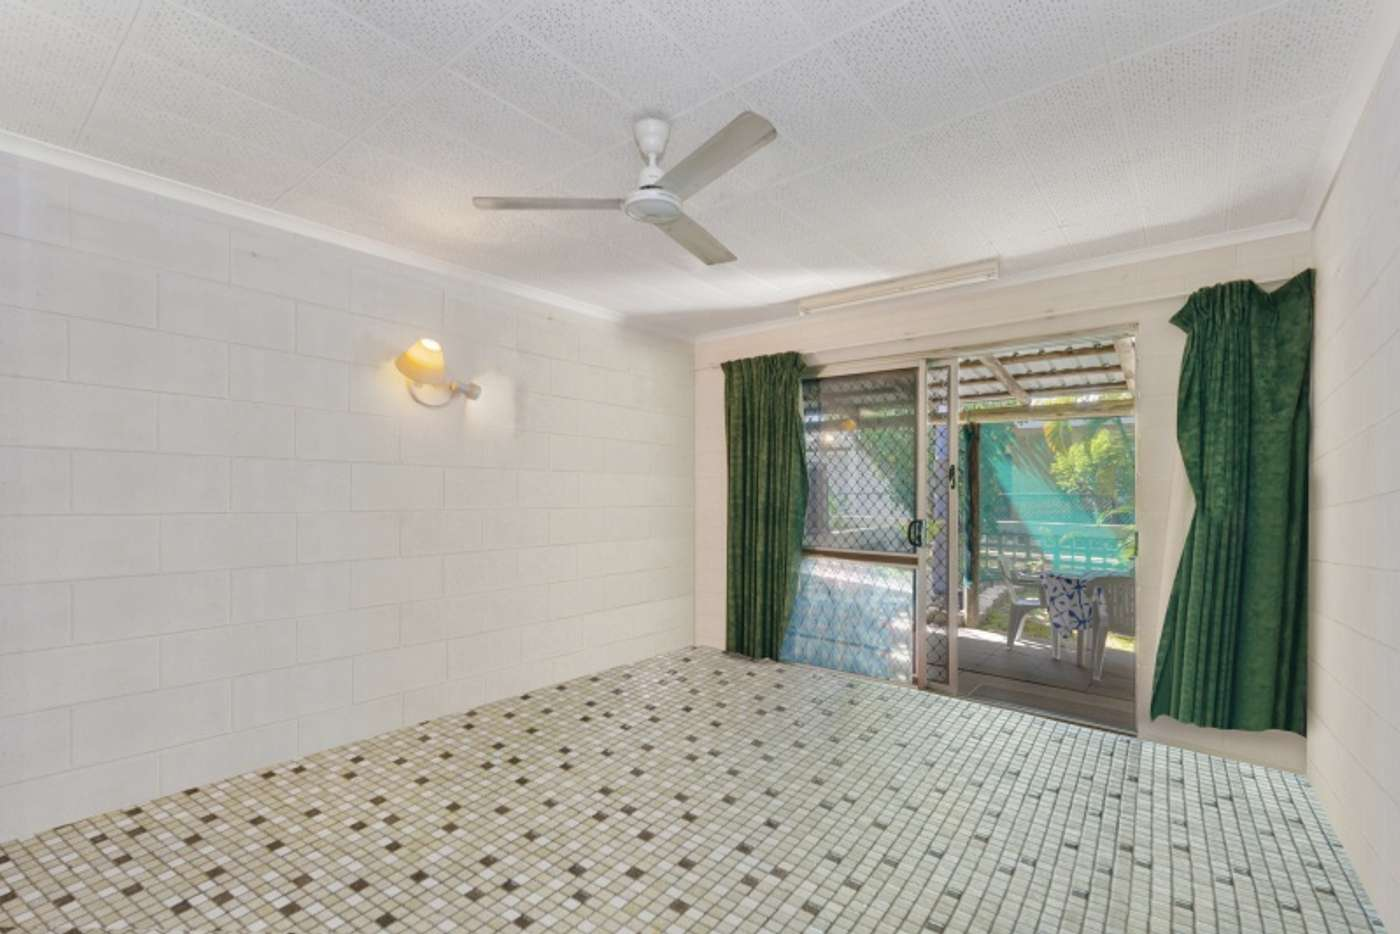 Fifth view of Homely blockOfUnits listing, 115 Eyre Street, North Ward QLD 4810